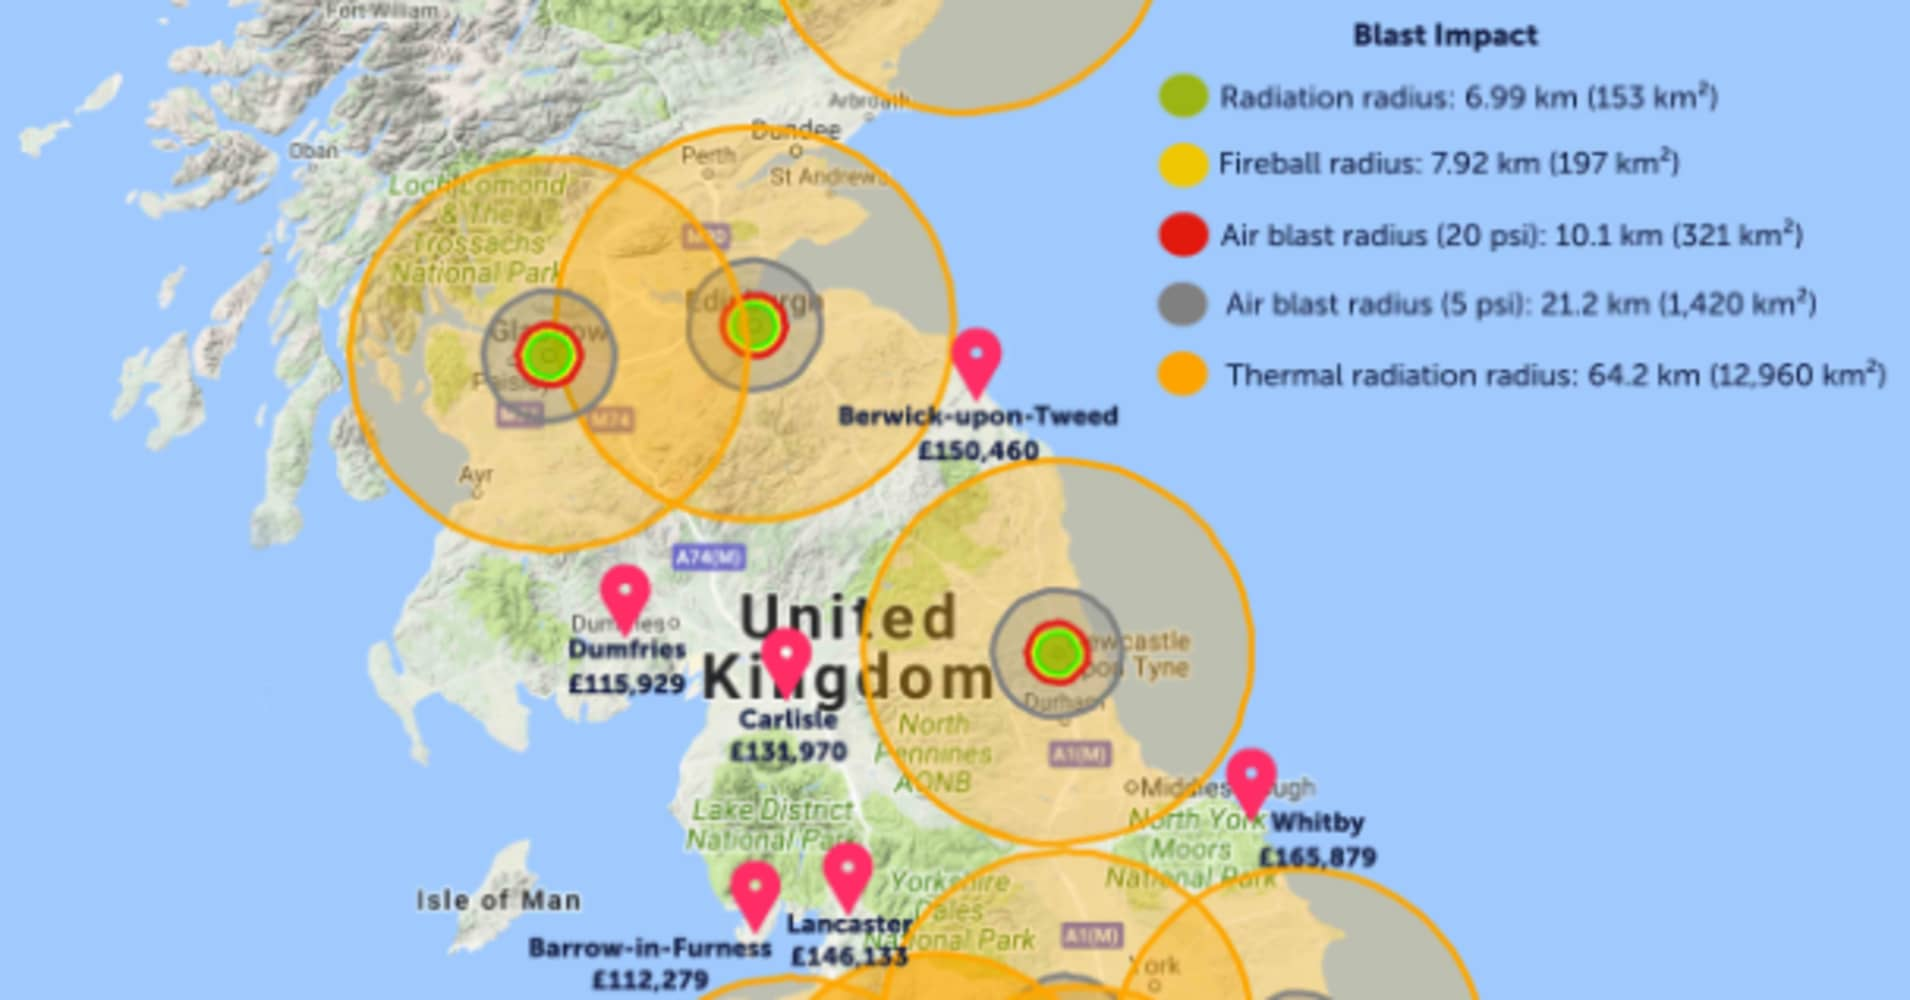 UK estate agent draws map of where to live to avoid 'nuclear impact zone' – then says sorry